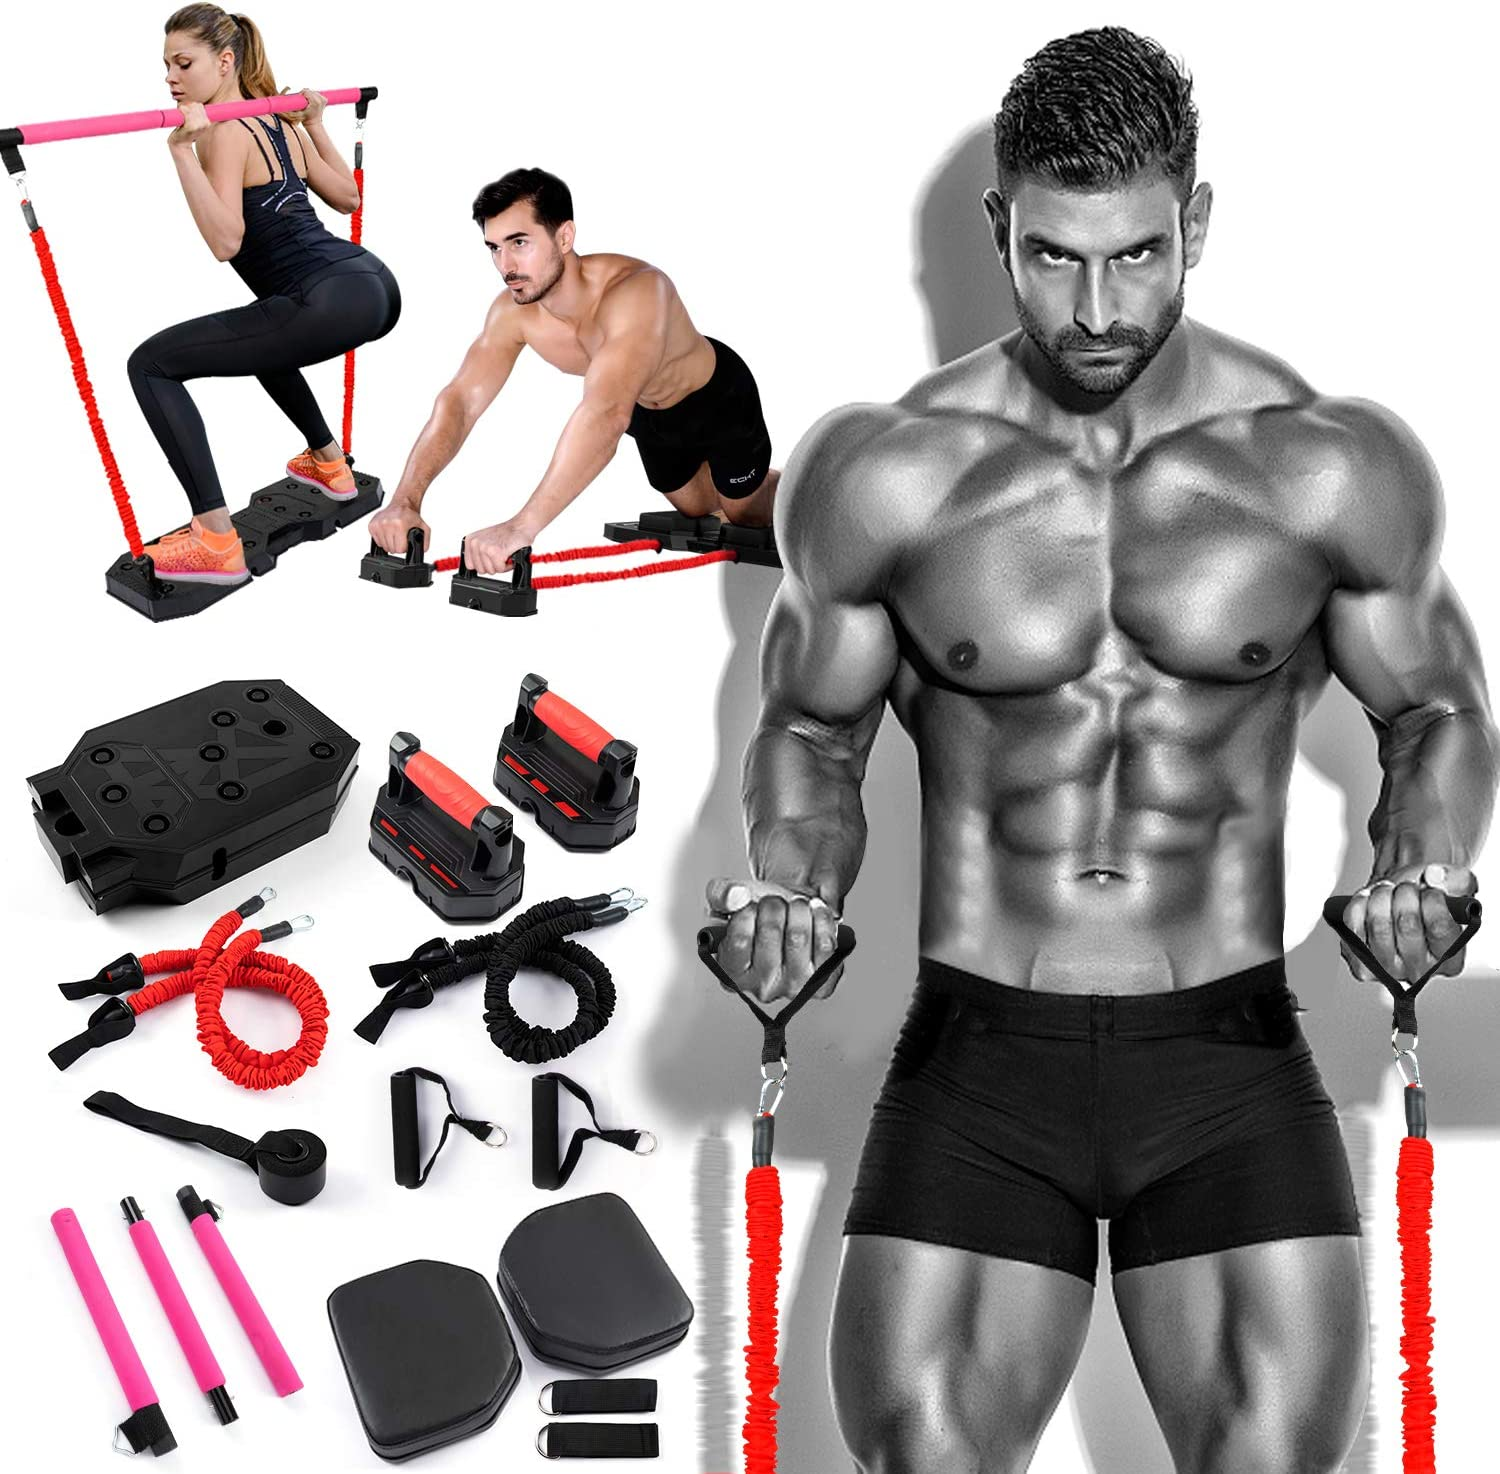 Portable Home Gym Workout Equipment with 8 Exercise Accessories,Pilates,Ab Roller Wheels 90 lbs Heavy Resistance Bands Push-up Stand,and More for Full Body Fitness System to Build Muscle and Burn Fat